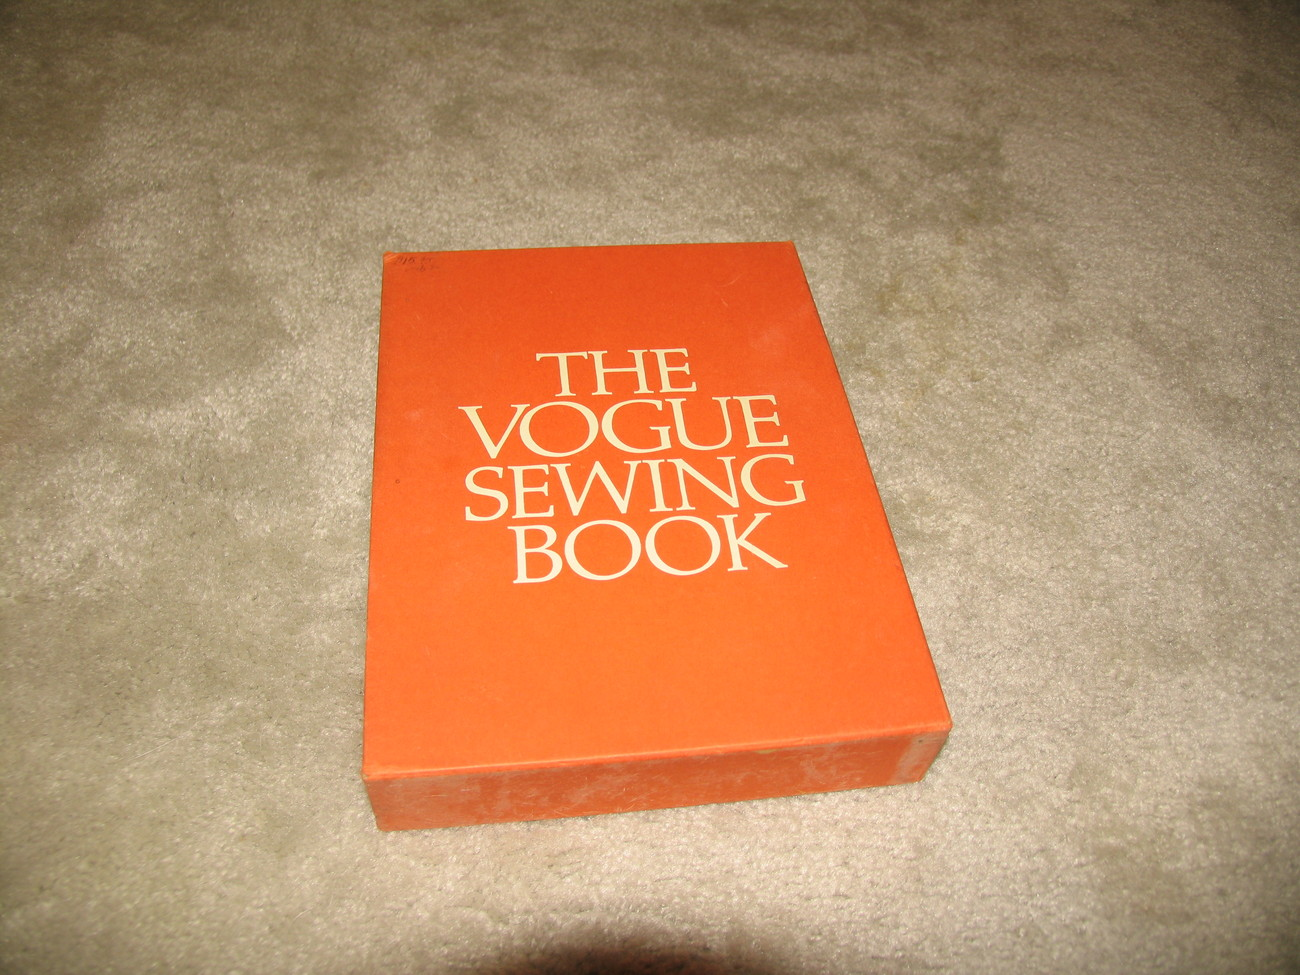 Vogue Sewing Book 1970 Vintage Collectible Hardcover Book